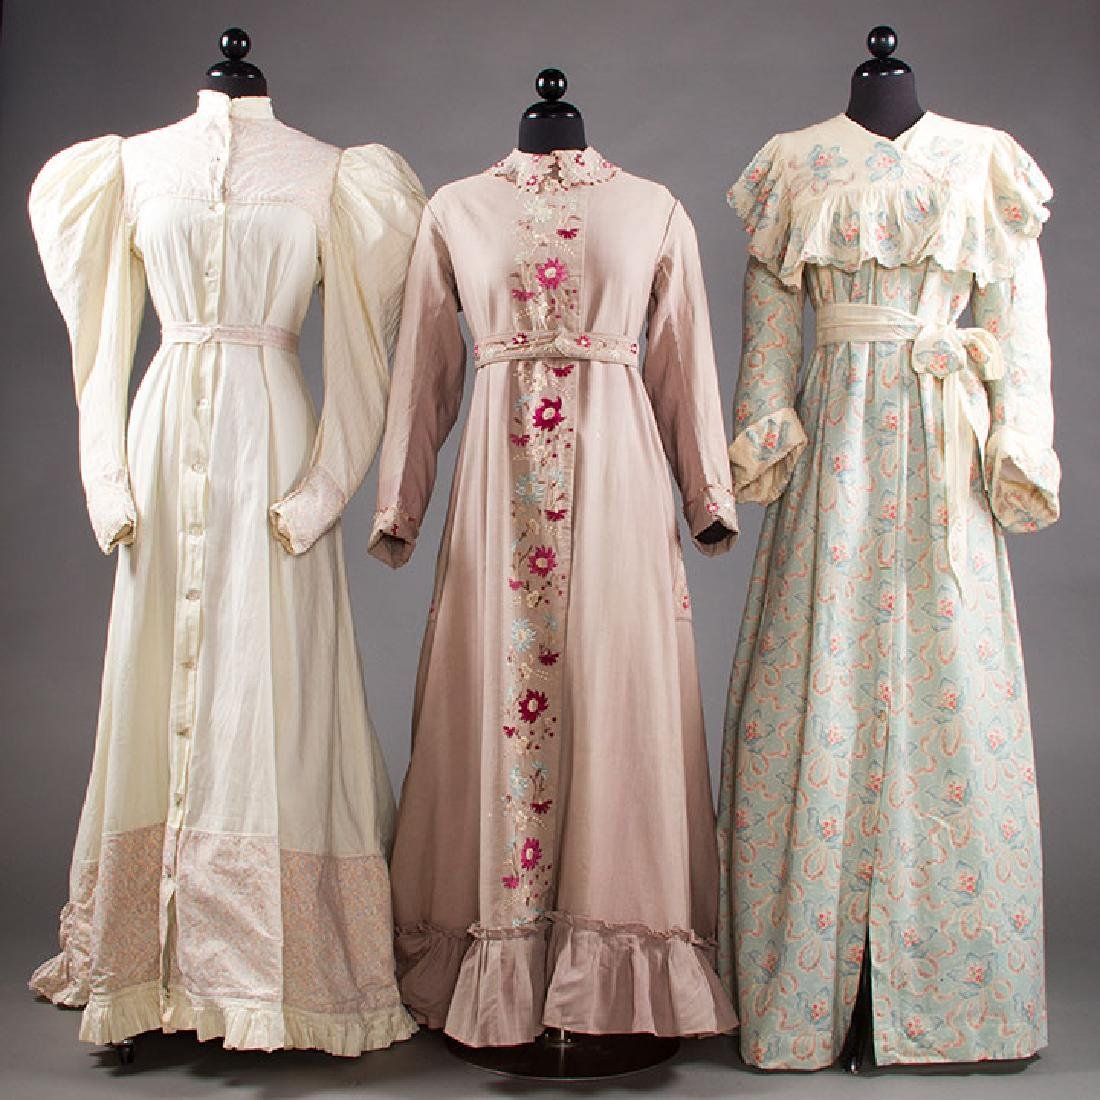 3 LADIES' AT-HOME WRAPPERS, 19TH C